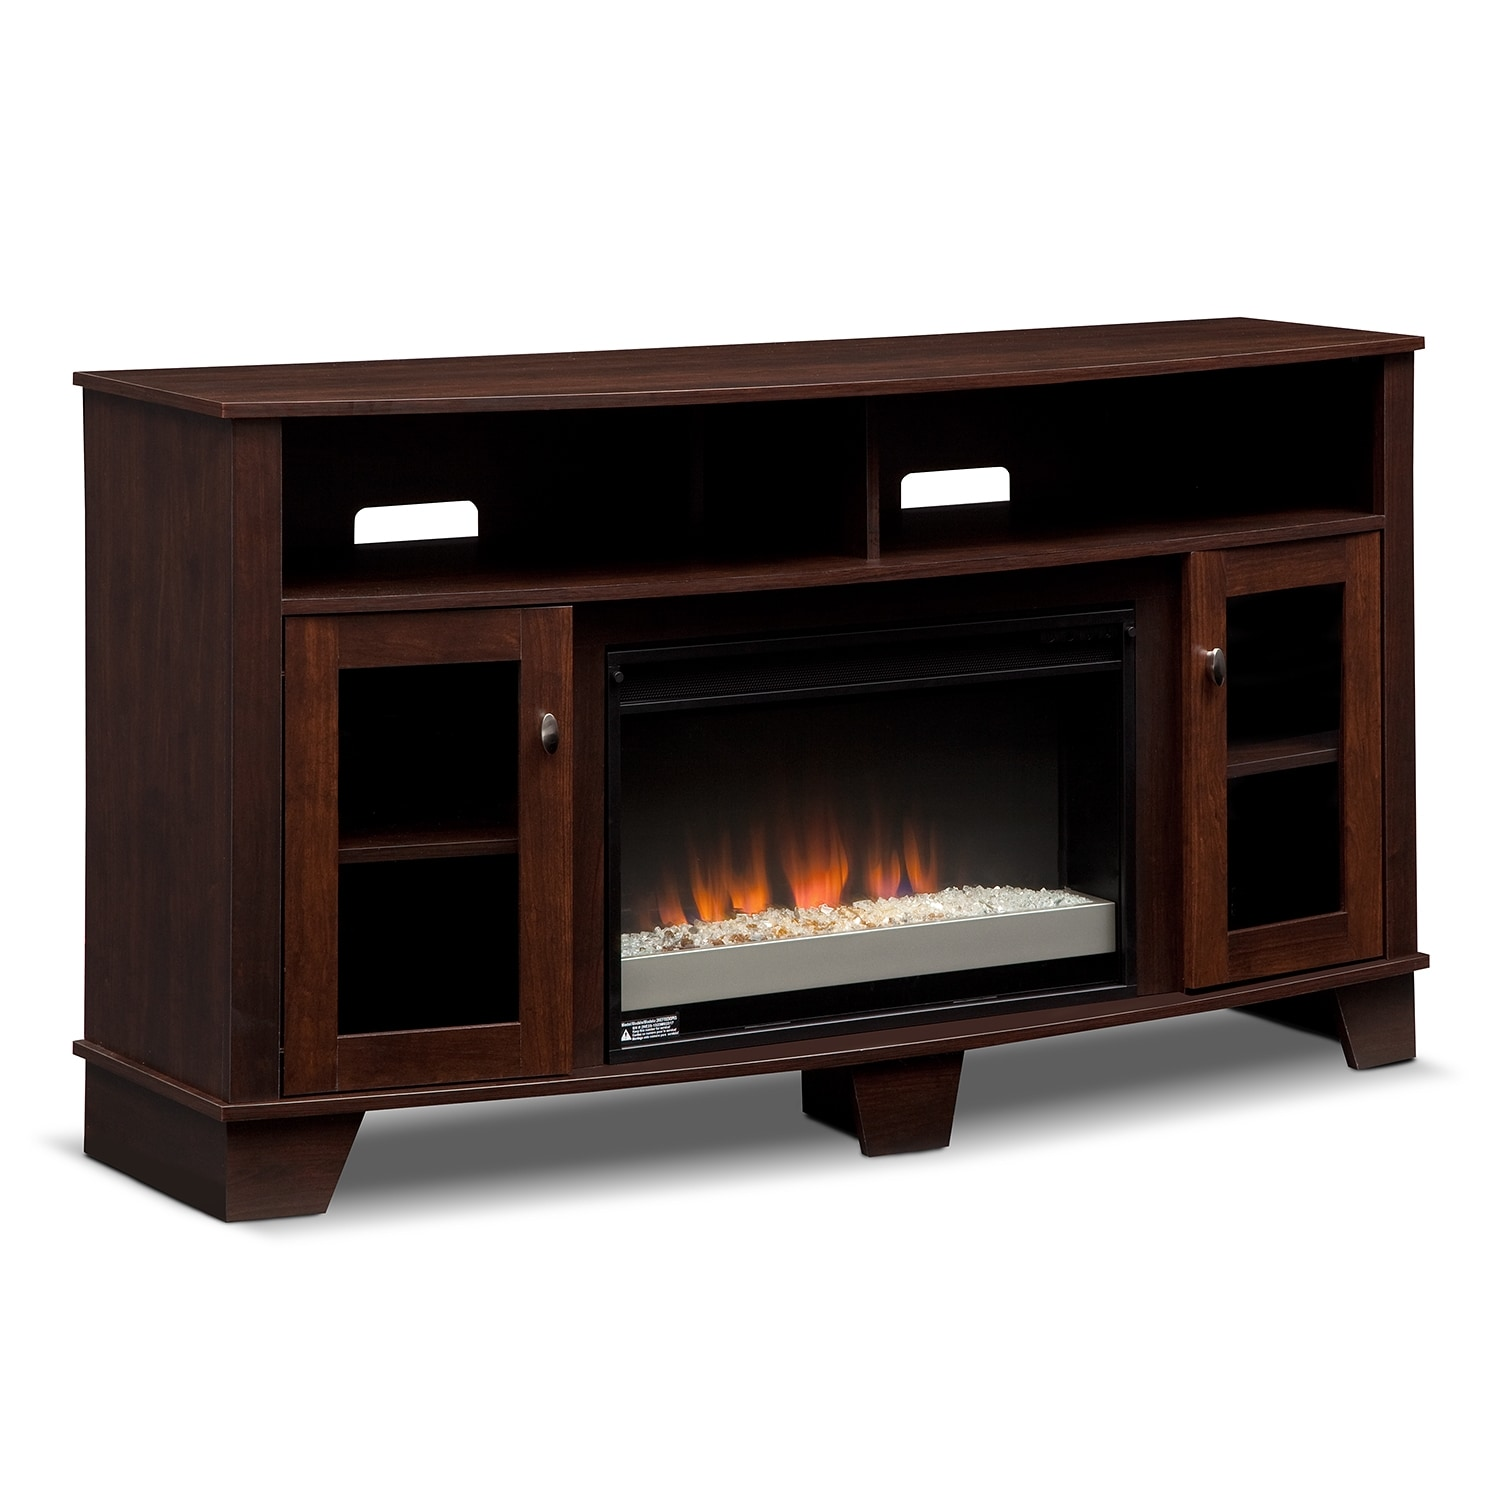 Entertainment Furniture - Bentwood Fireplace TV Stand with Contemporary Insert - Dark Cherry